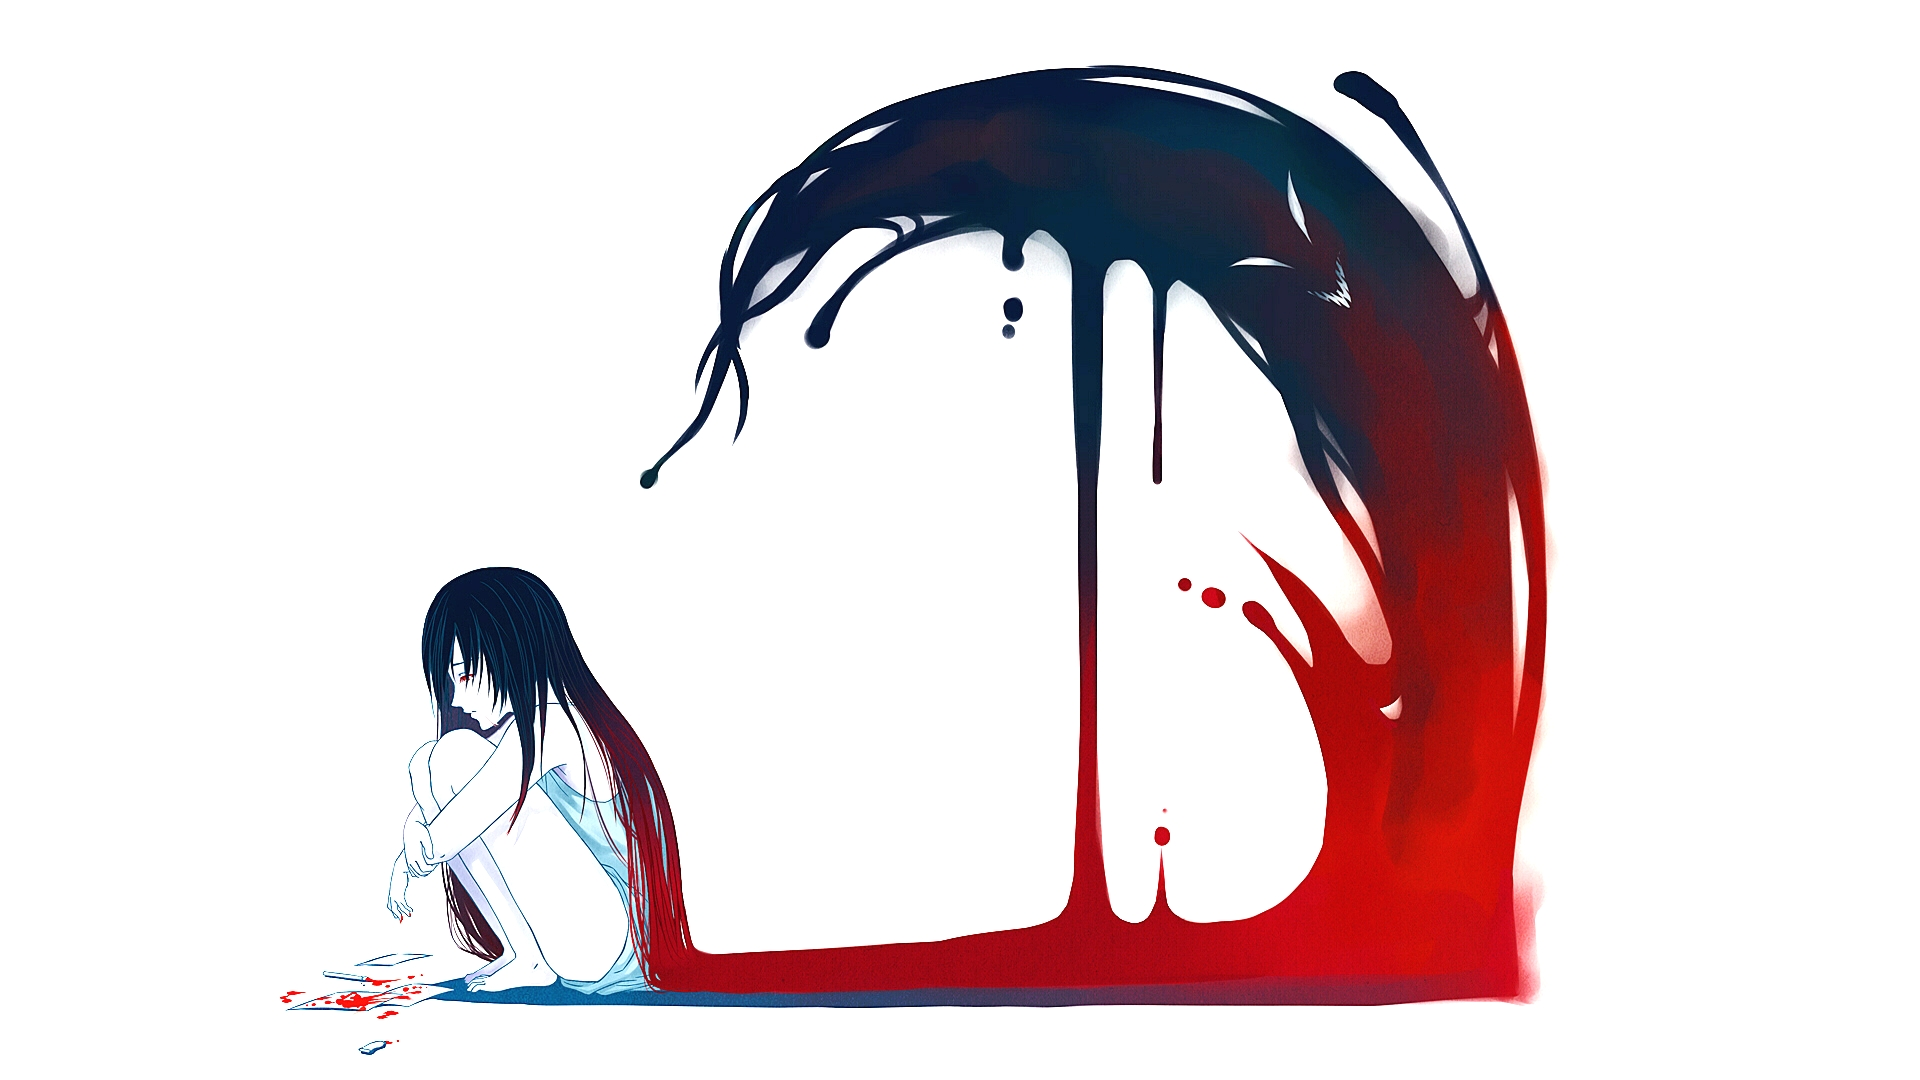 anime girl under wave of blood blank template imgflip